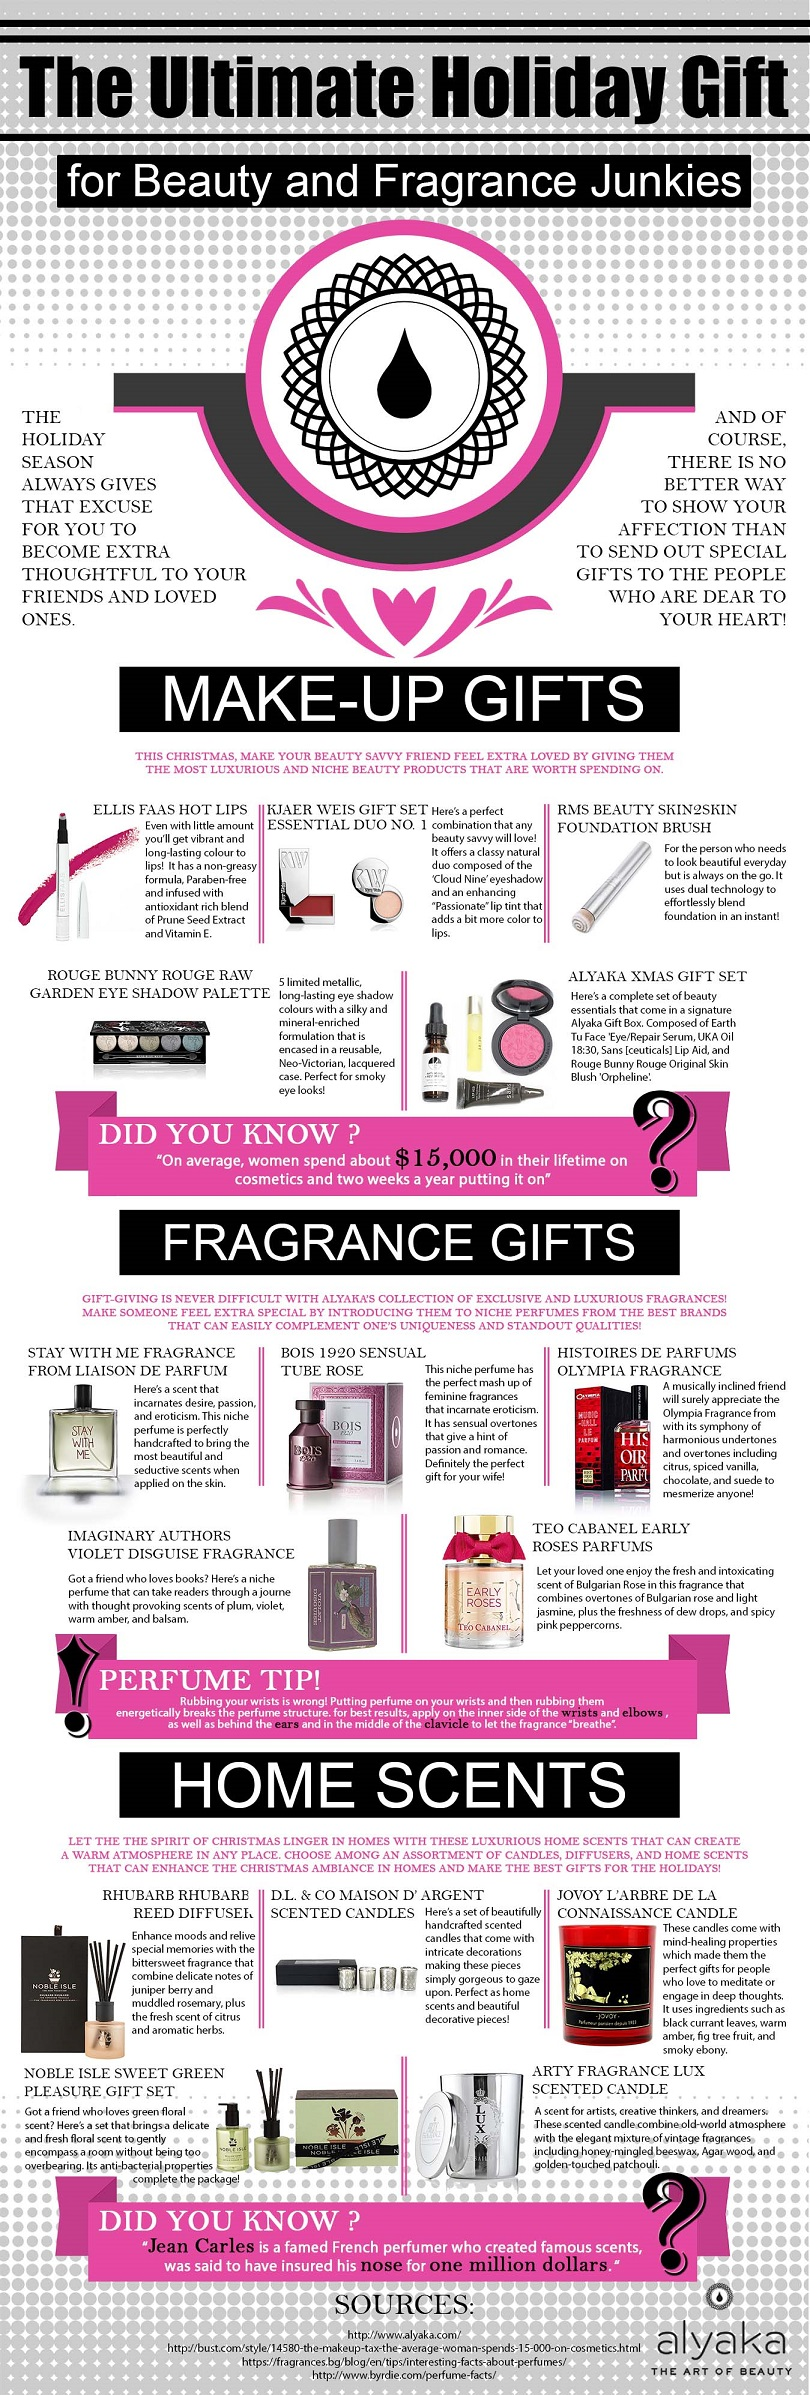 Ultimate Holiday Gift Guide for Beauty and Fragrance Junkies infographic